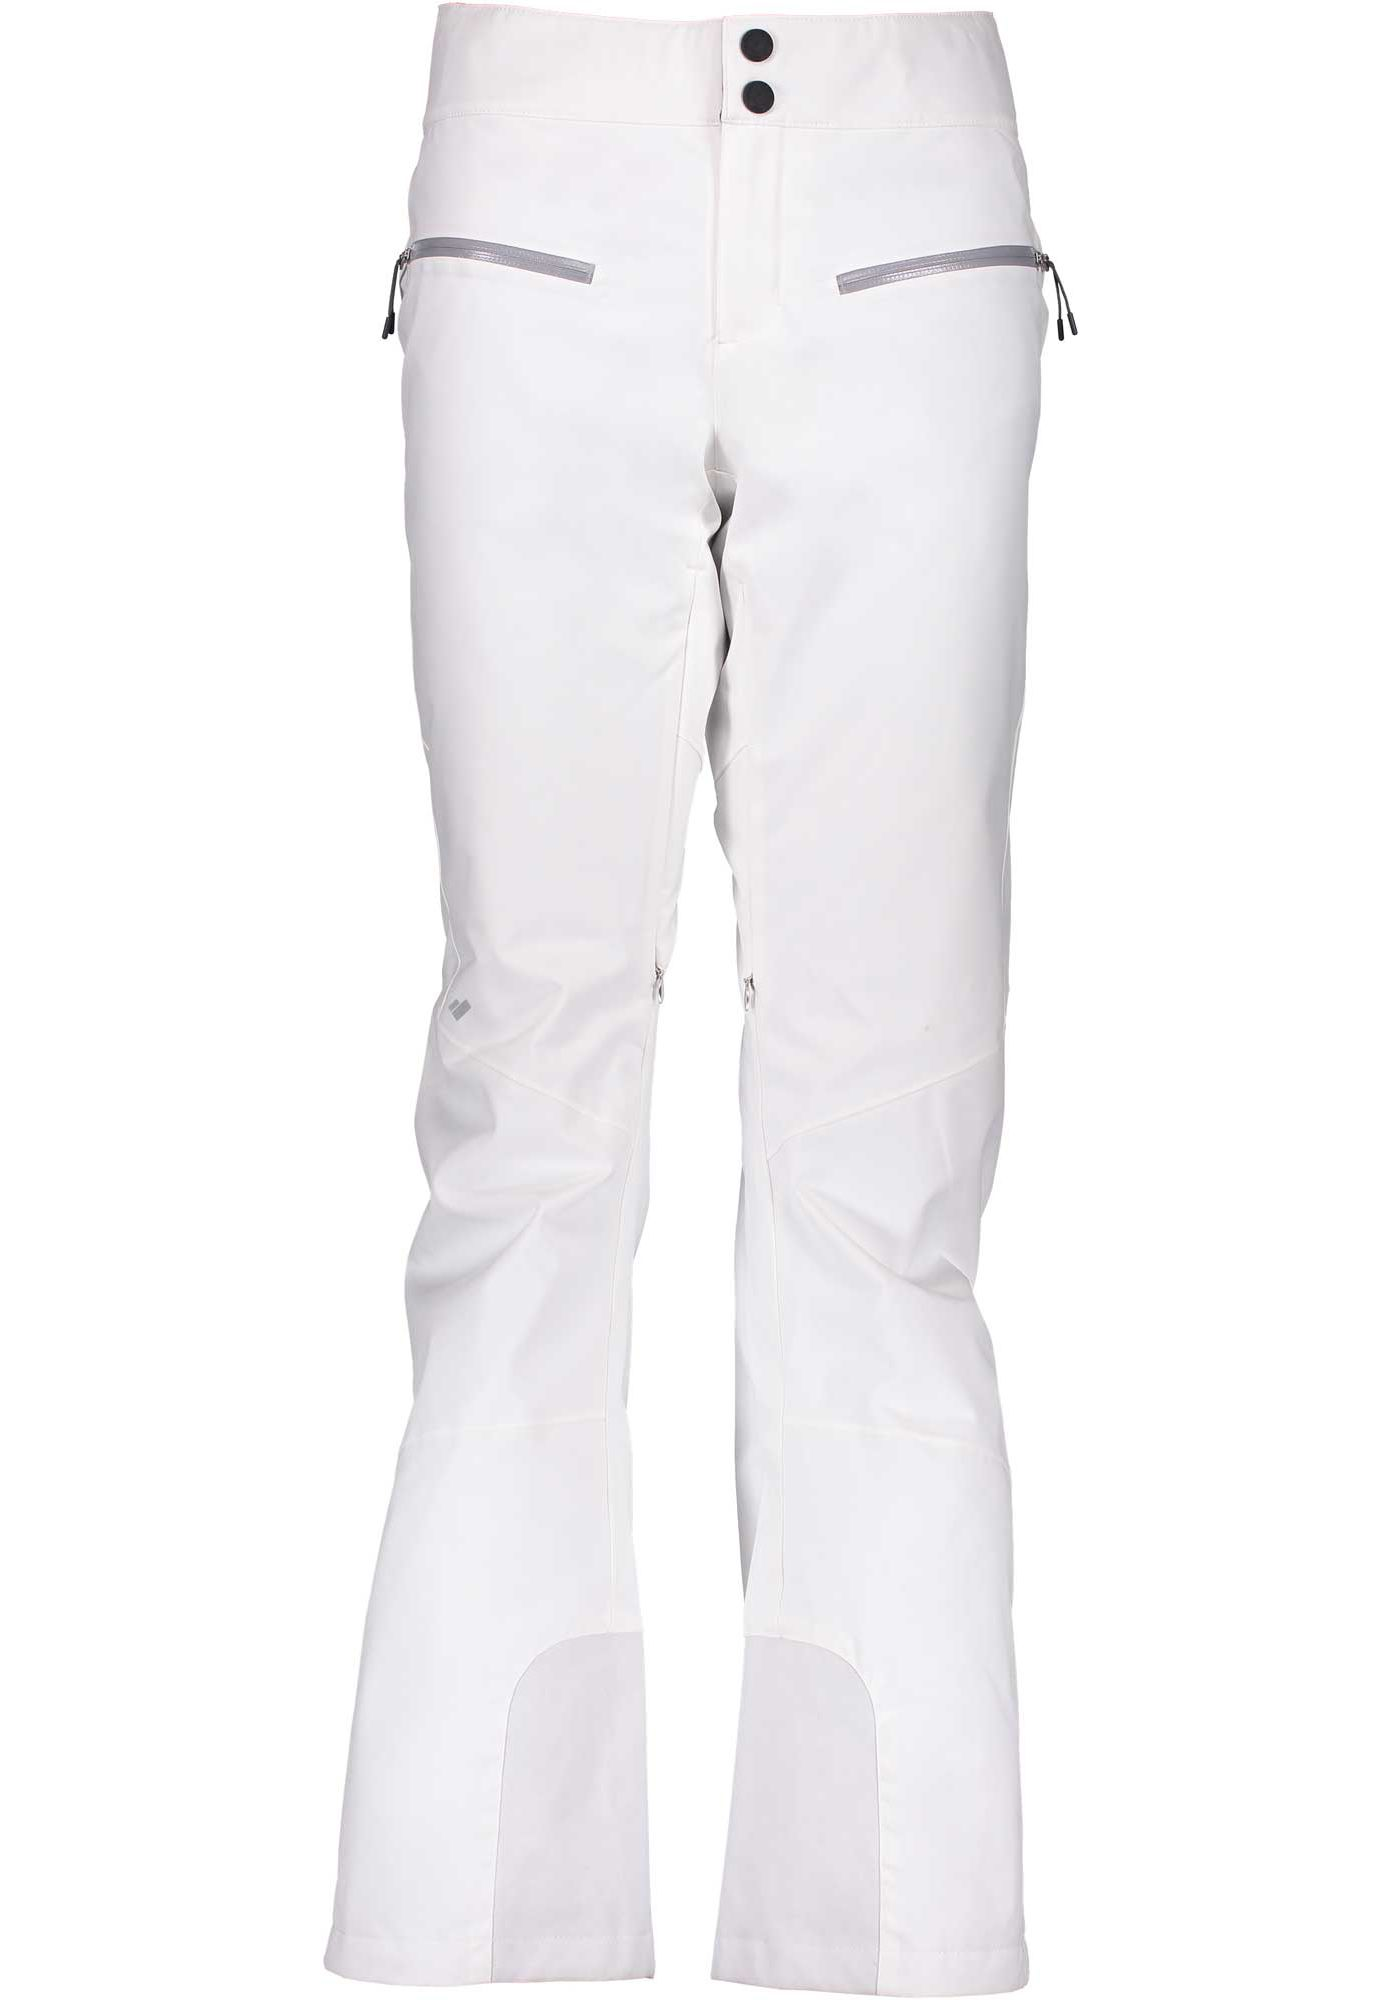 Obermeyer Women's Bliss Pants